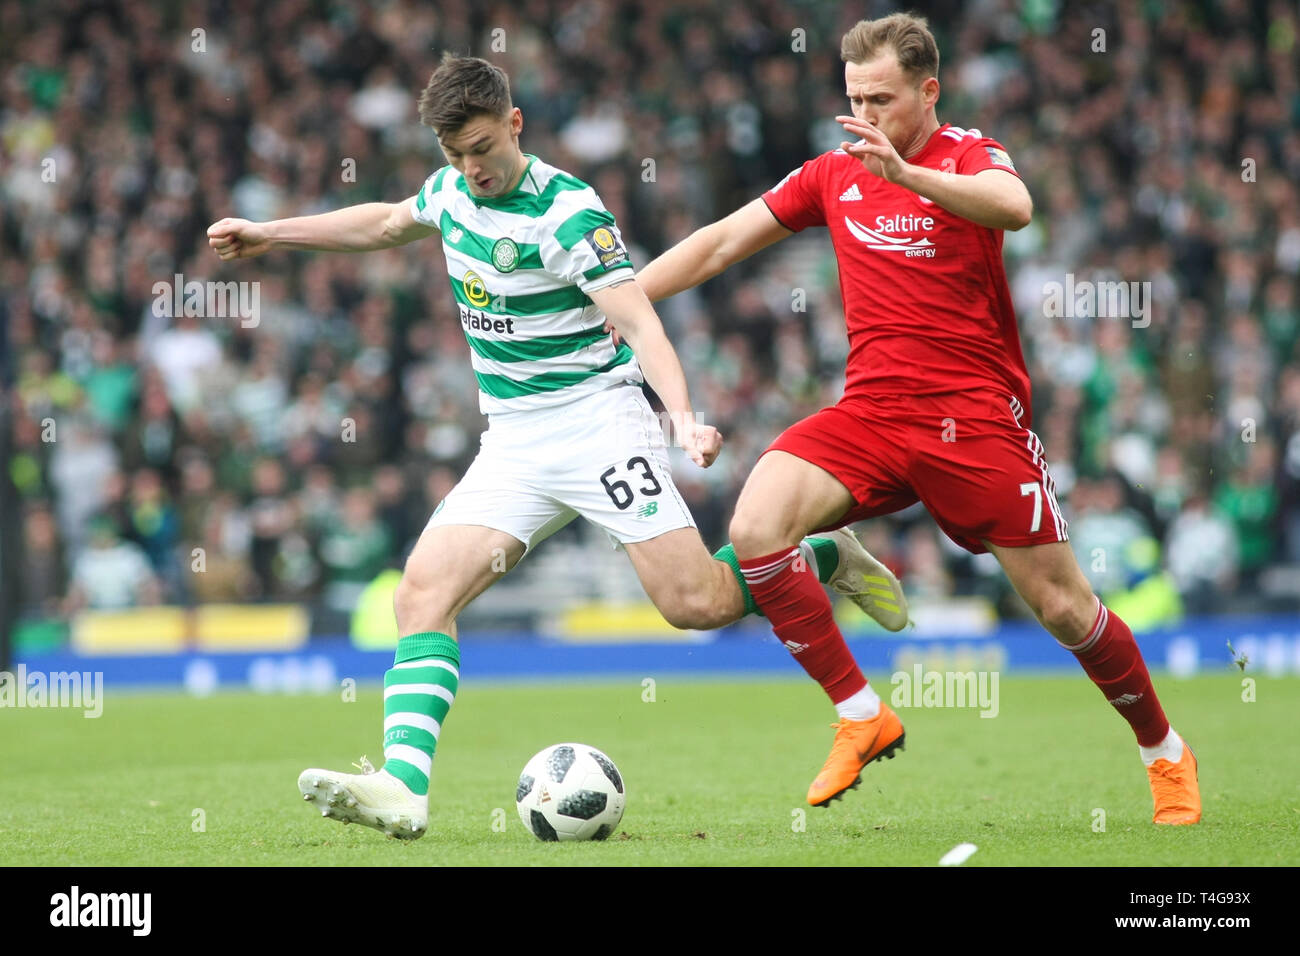 Glasgow, Scotland - April 14. Kieran Tierney of Celtic and Greg Stewart of Aberdeen compete for the ballduring the William Hill Scottish Cup - Stock Image